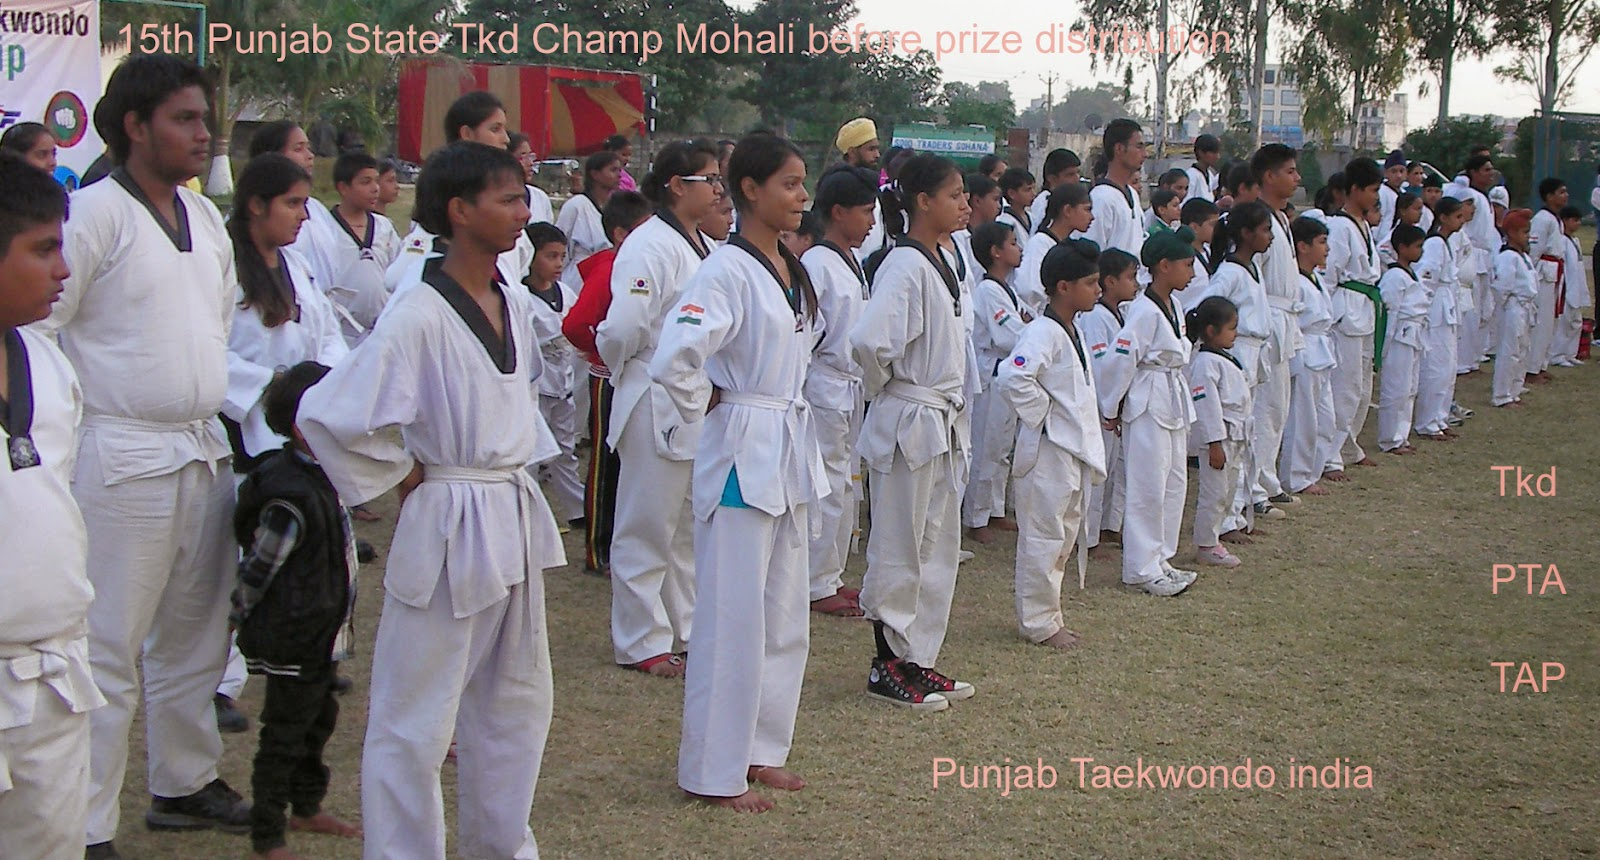 Prize Distaribution 15th Punjab state Taekwondo Championhsip, Golden Bells Public School, Taekwondo, Martial Arts, Fitness, Tkd, Championships, Training, Classes, Coaching, Self-defence, Girls, Women, Safety, Fitness,  Mohali, SAS Nagar, near Chandigarh, Punjab, India, Shere, Lions, Videos, Movies, Master, Er. Satpal Singh Rehal, Rehal, Academy, Association, Federation, Clubs, Satpal Rehal, Korean Judo Karate, Chandigarh, Reiki, Healing, Kot Maira, Garhshankar, Hoshiarpur, Jalandhar, Amritsar, Patiala, Mansa, Ludhiana, Ferozepur, Sangrur, Moga, Pathankot, Gurdaspur, Barnala, Nawanshahar, Ropar, Ajitgarh, Fatehgarh Sahib, Taran Taran, Patti, Faridkot, Winners, Medal Ceremony, Chief Guest, TAP, PTA, Grandmaster, Reiki, TFI, Jimmy R Jagtiani, Lucknow, School, Games